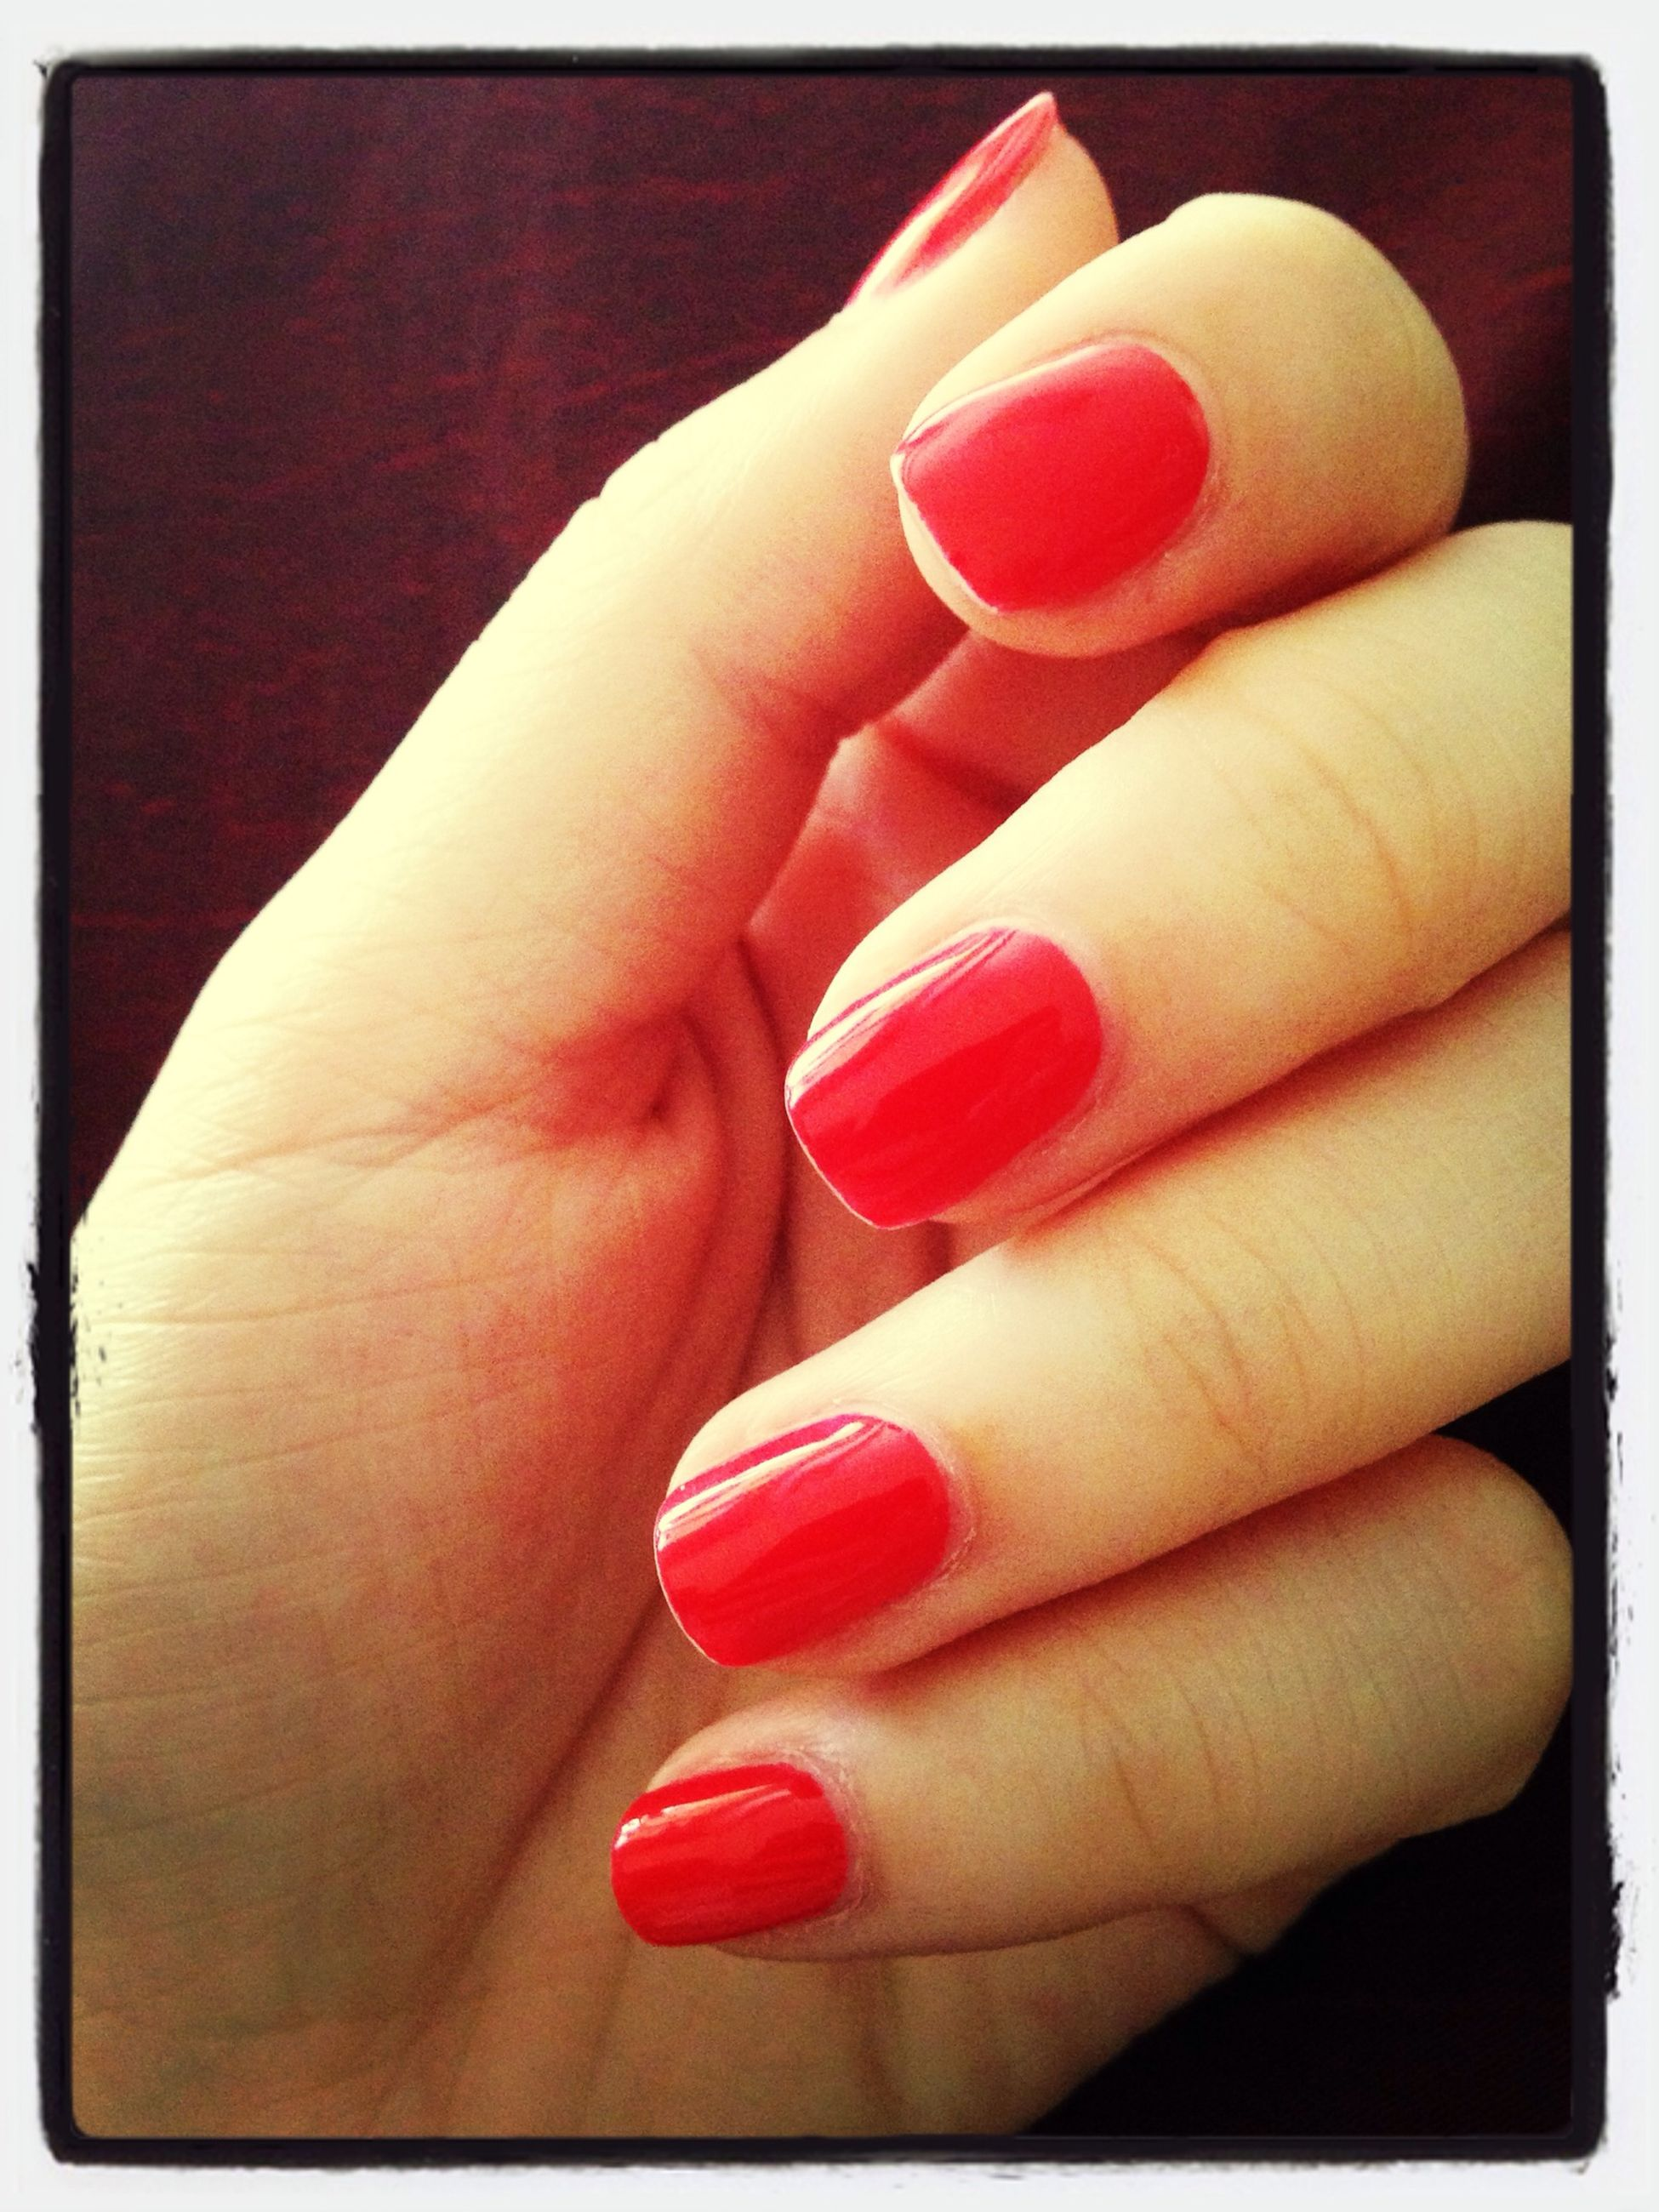 person, part of, holding, human finger, red, cropped, indoors, close-up, transfer print, lifestyles, nail polish, auto post production filter, studio shot, unrecognizable person, food and drink, showing